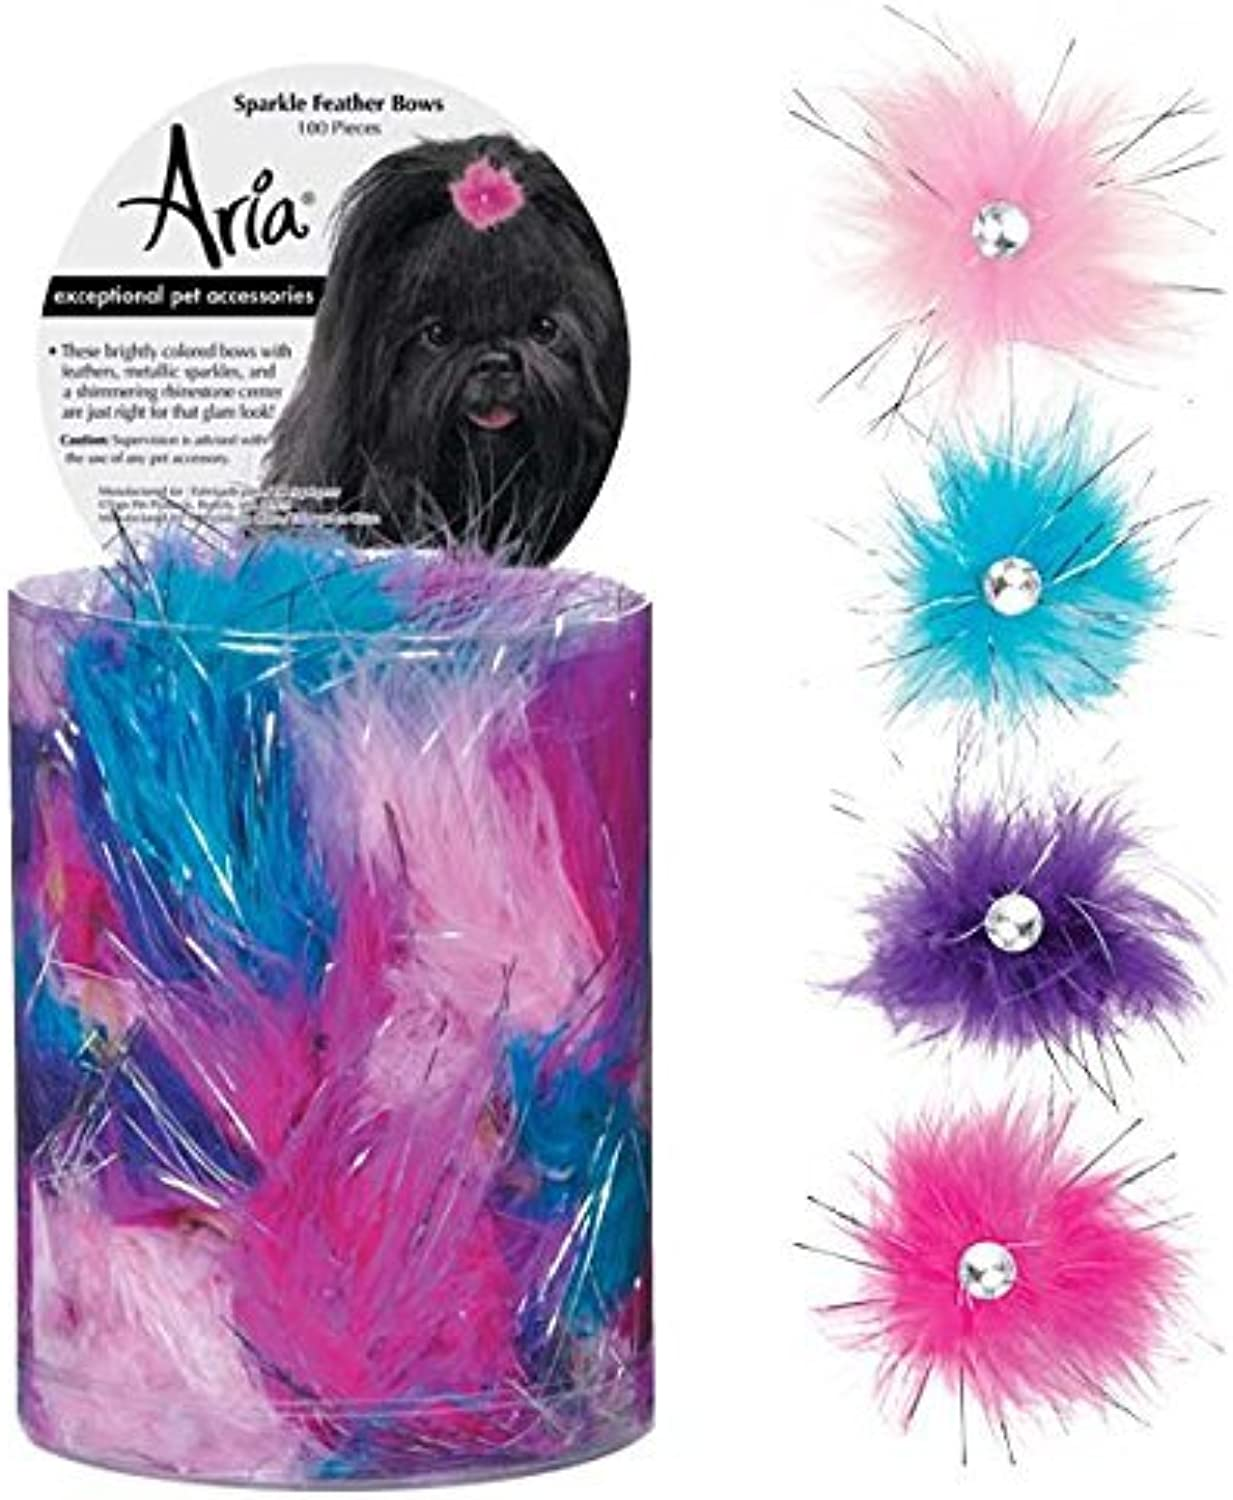 Aria Sparkle Feather 100 Piece Bows for Dogs by Aria